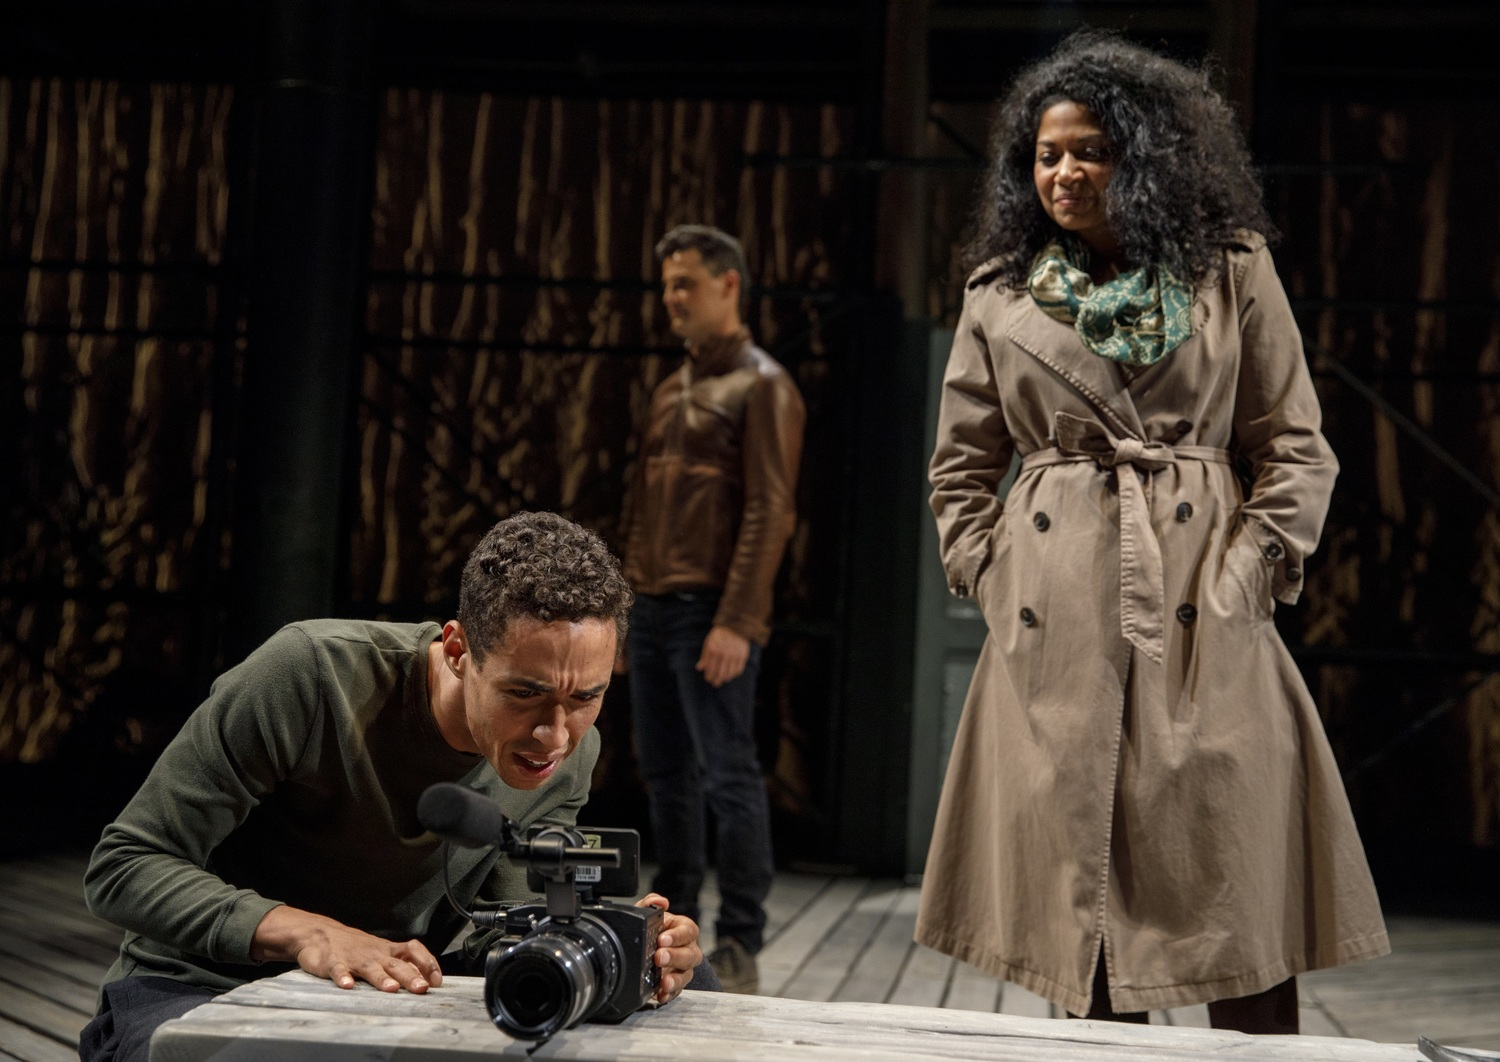 BWW Interview: FIRE IN DREAMLAND's Kyle Beltran on Resilience, Re-Building, and Reigniting the Light